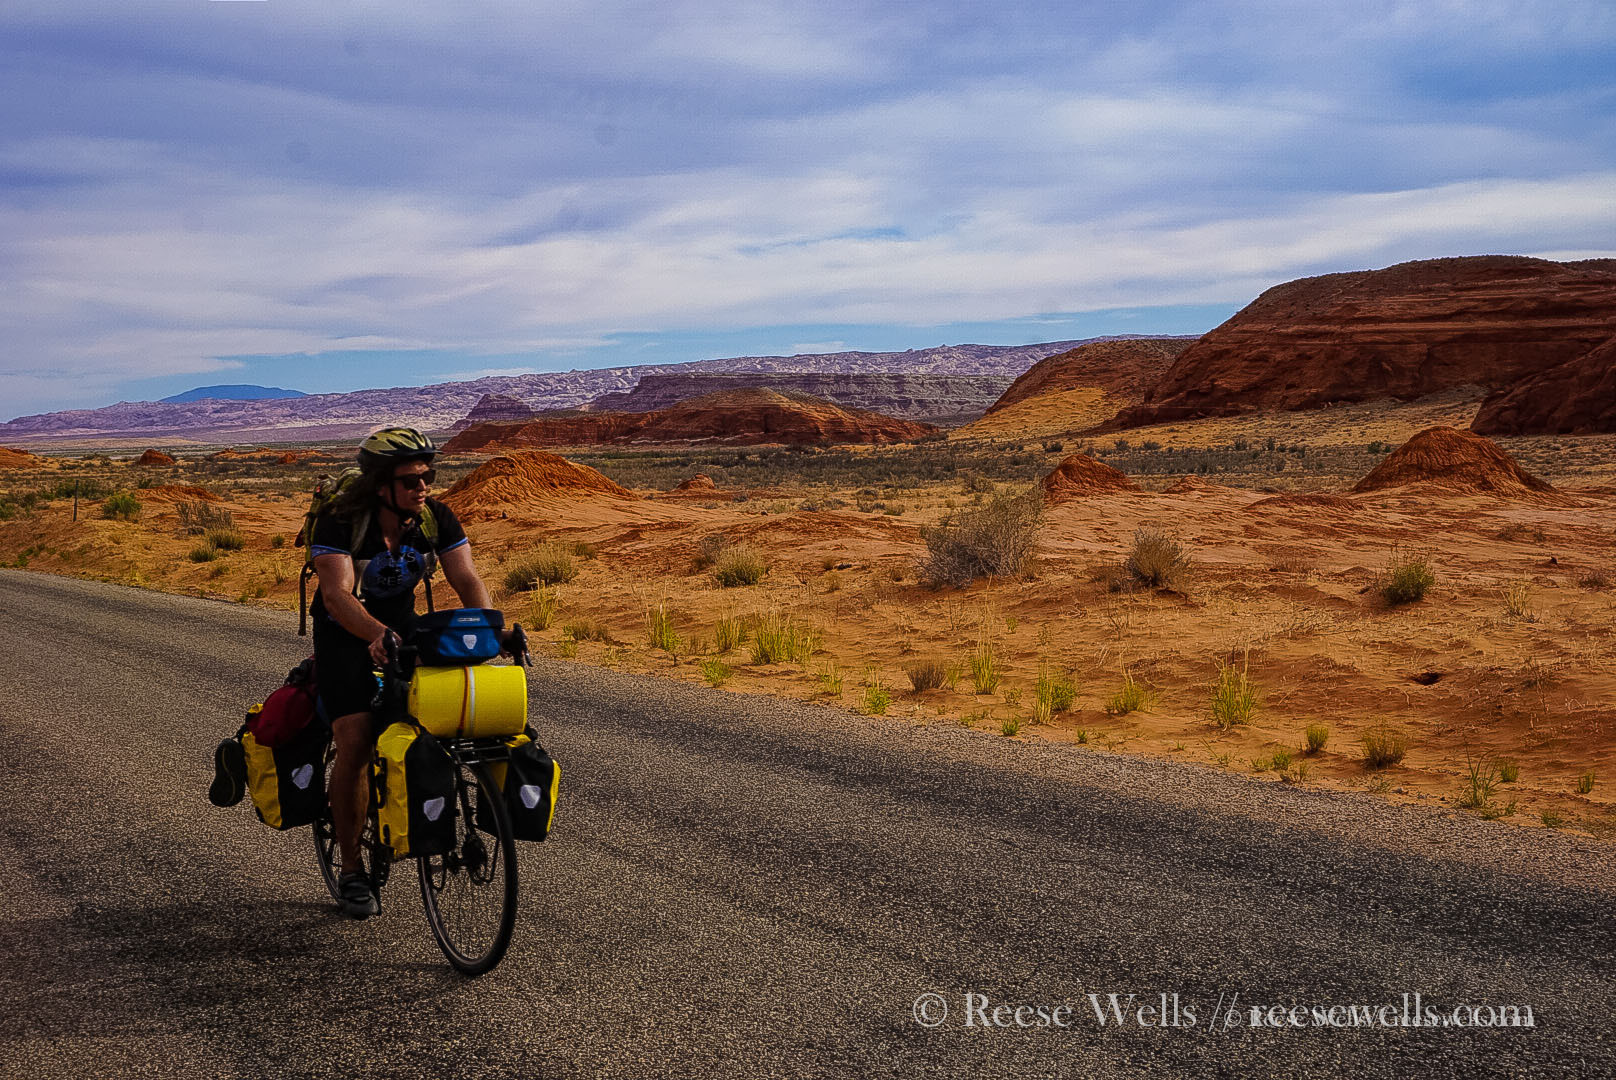 Desert descent into Bullfrog, Utah at the end of a long 100+ degree day.